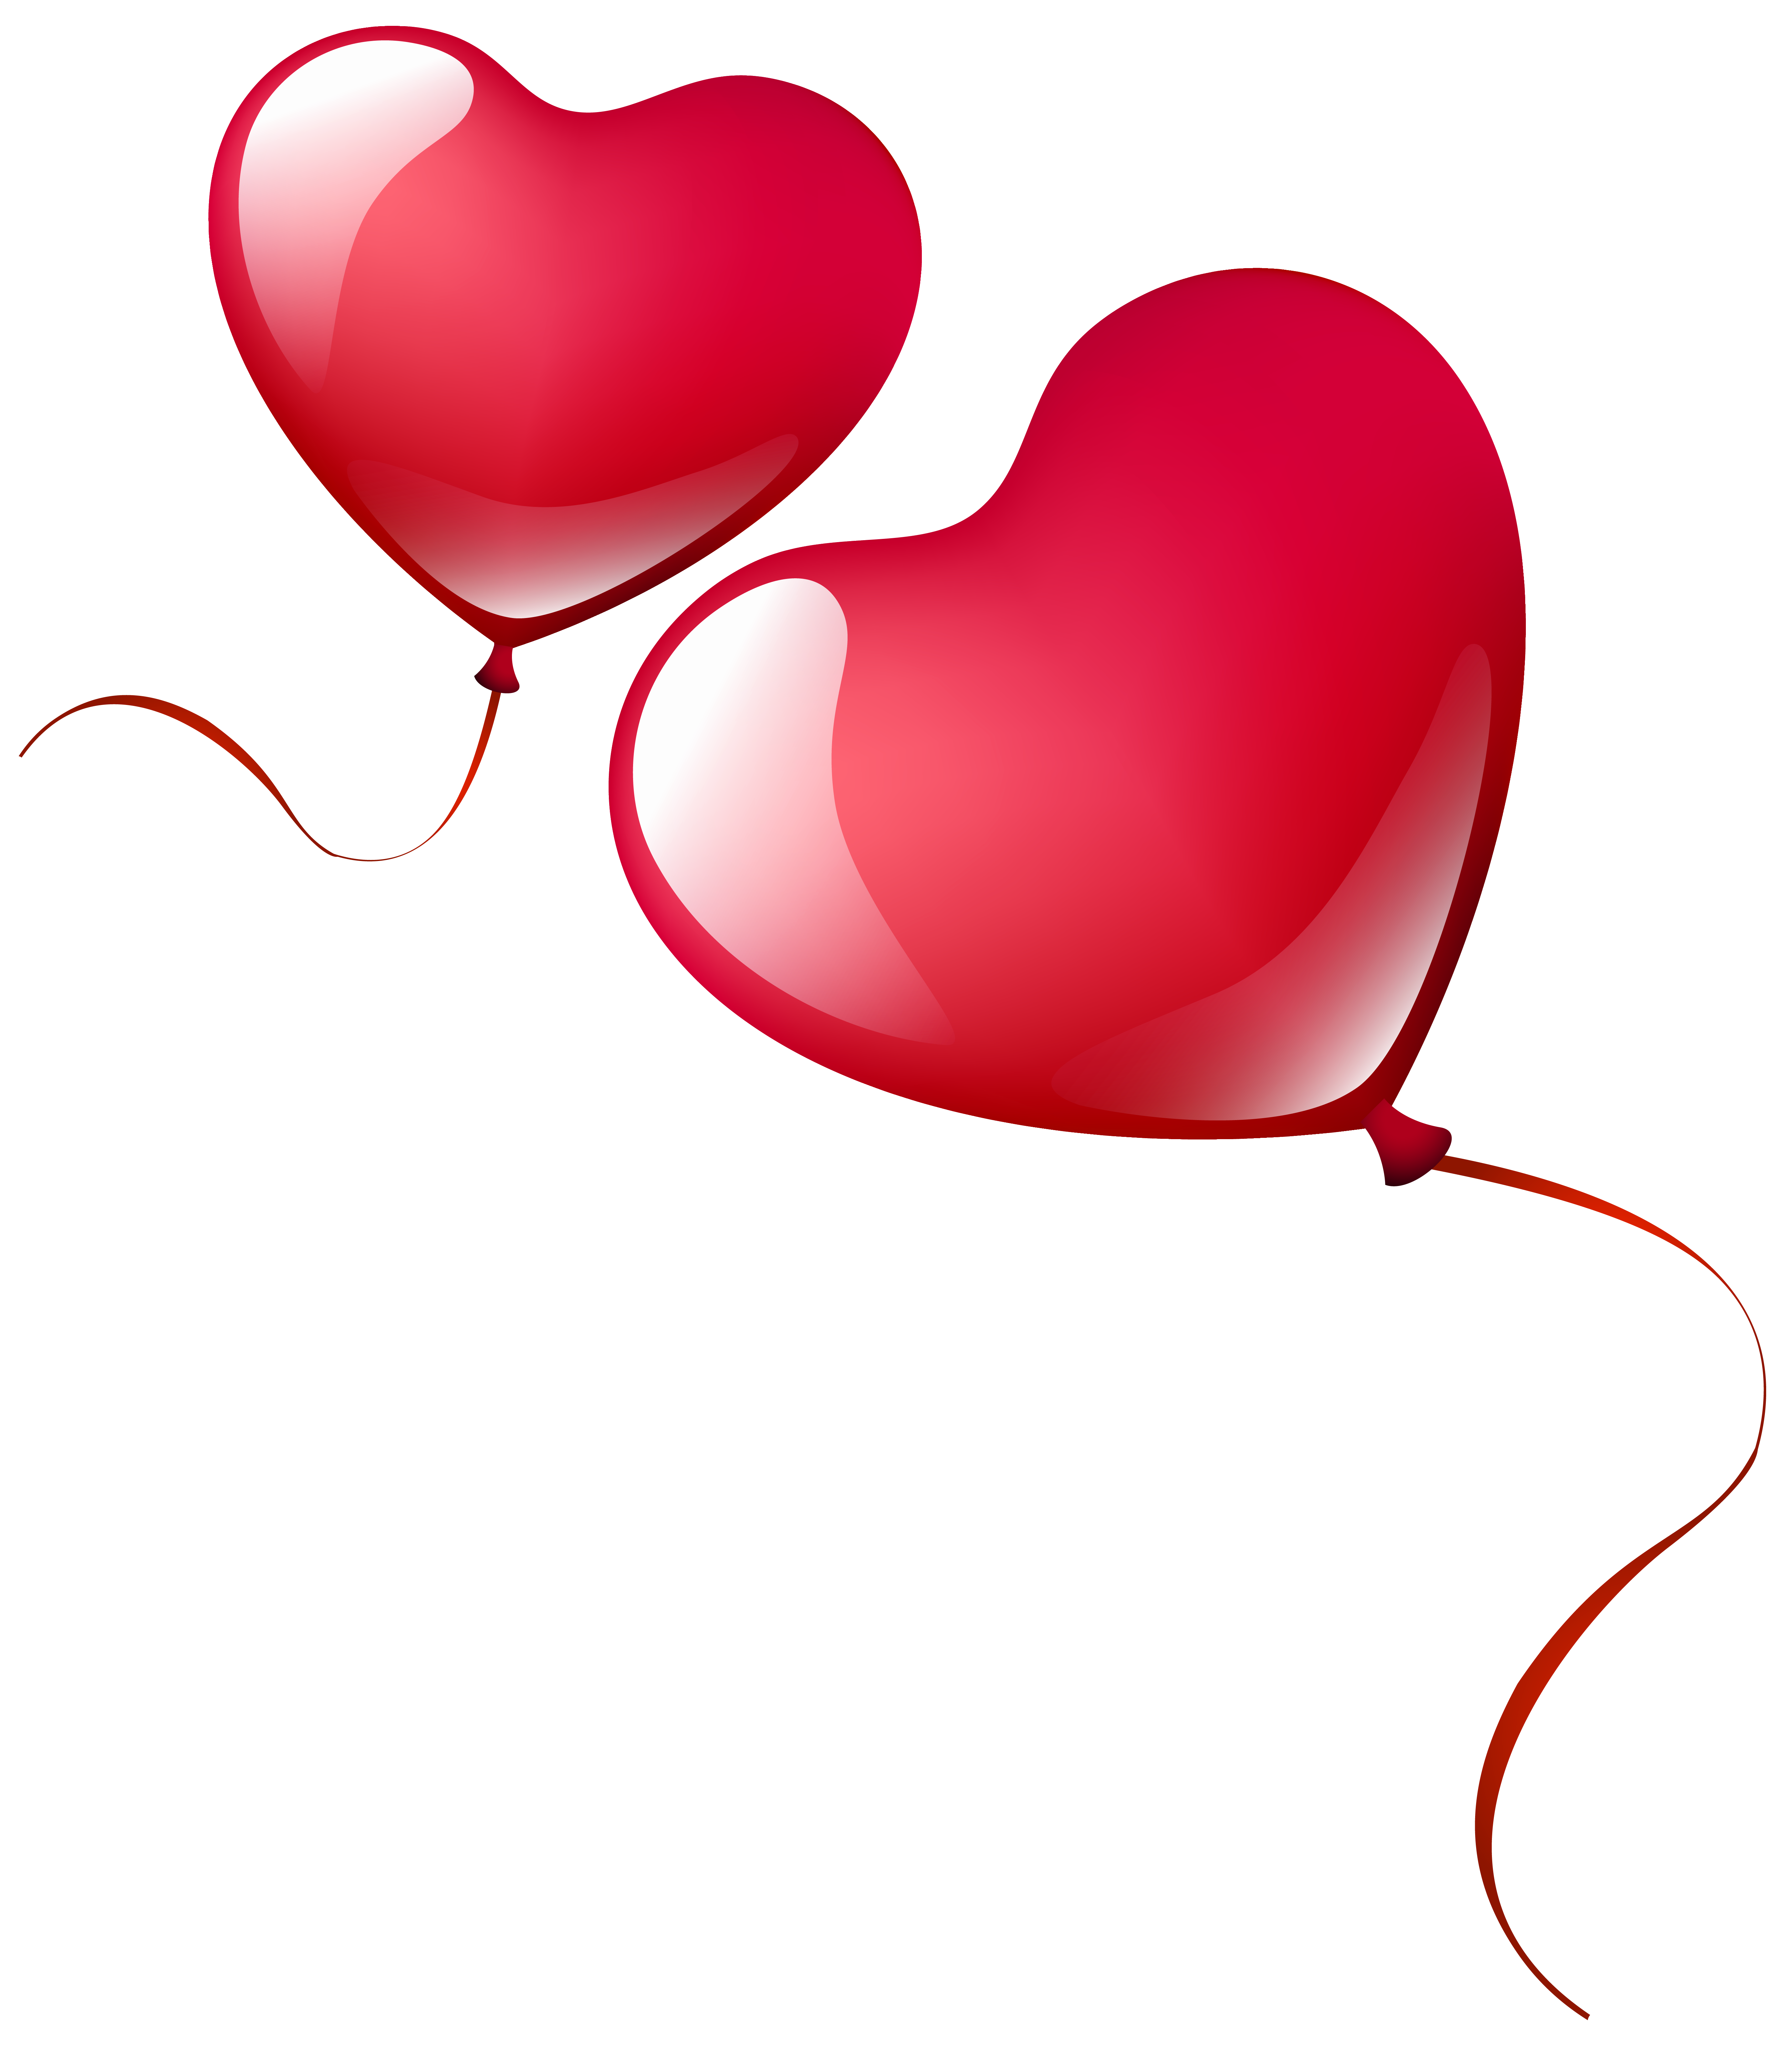 Heart balloon clipart image free stock Heart Balloons PNG Clipart Image | Gallery Yopriceville - High ... image free stock